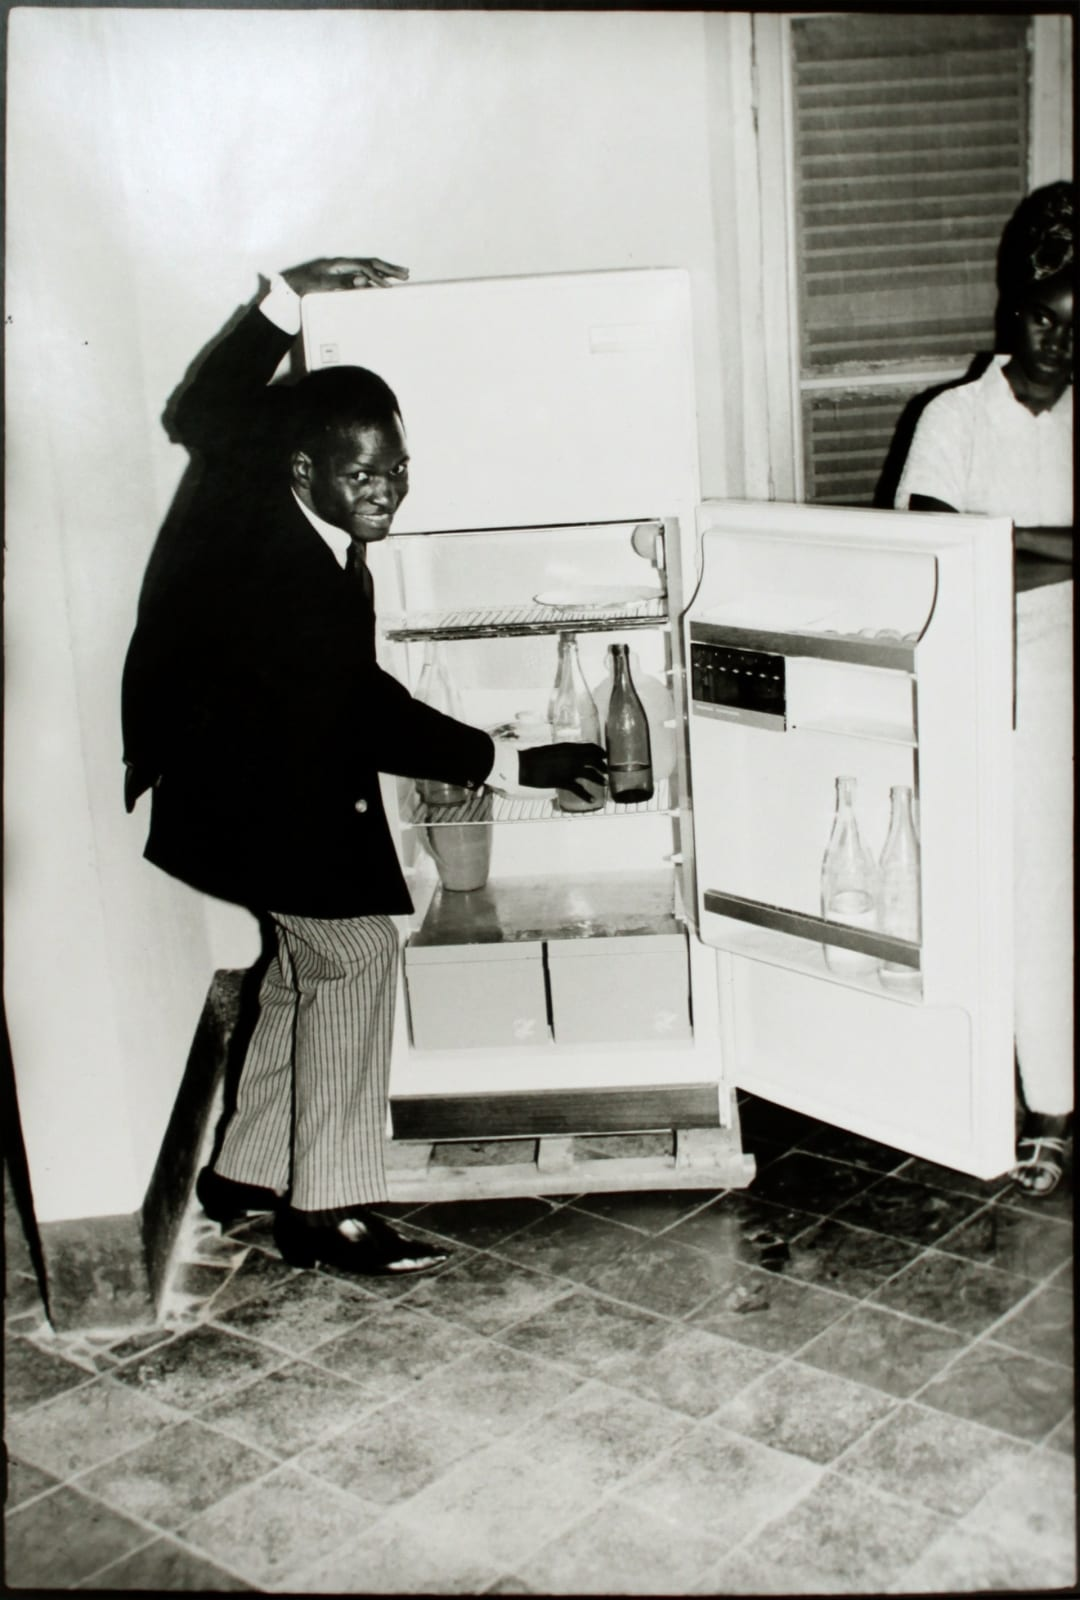 Me Alone at the Fridge, 1968